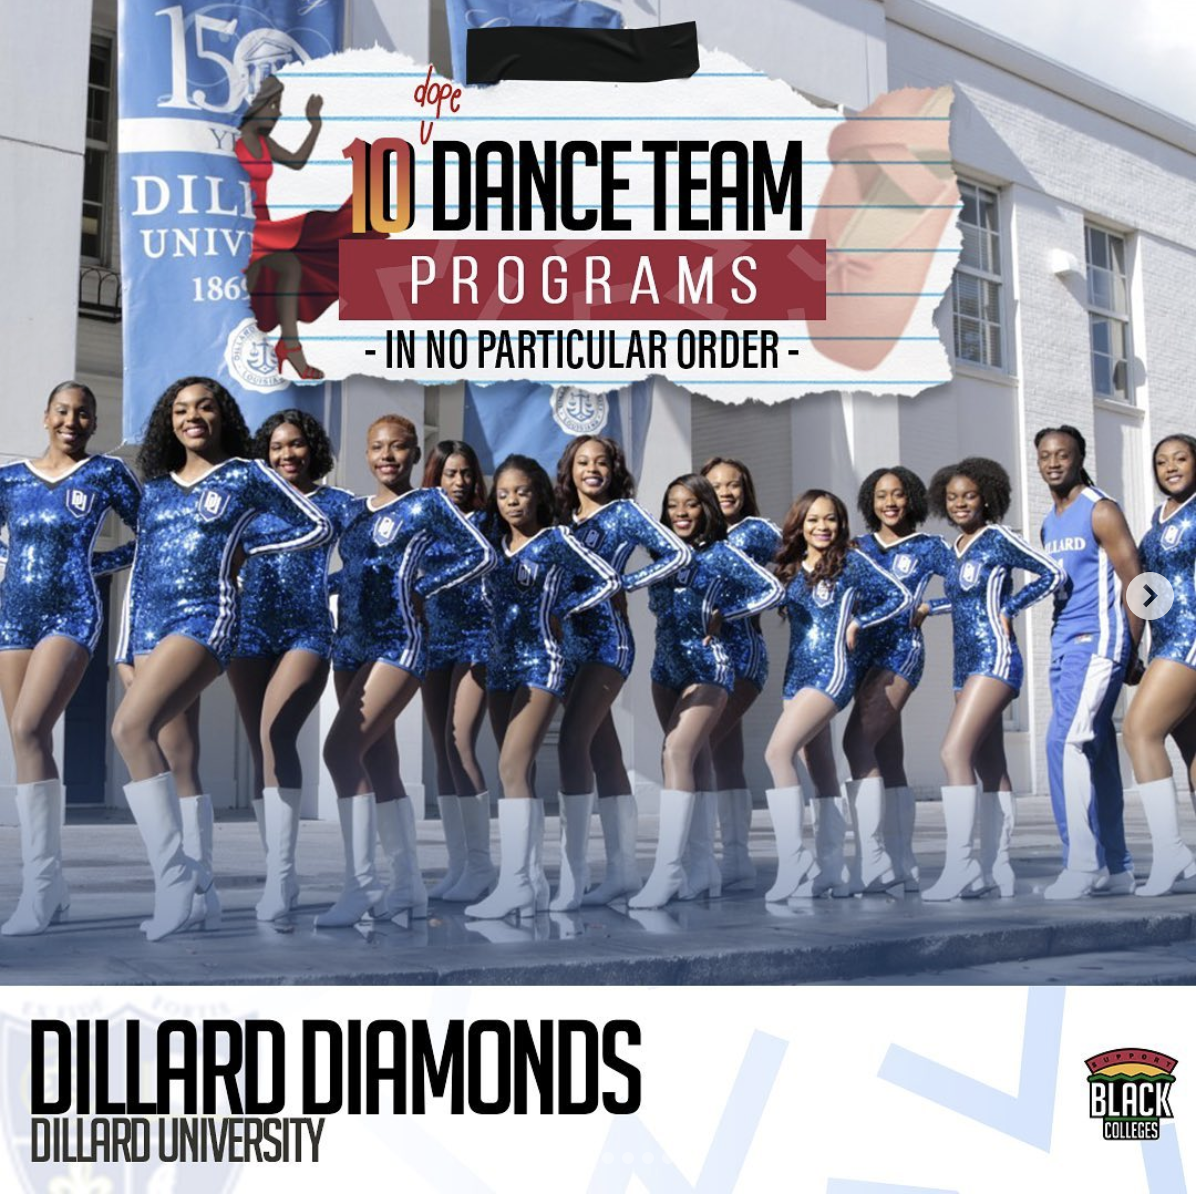 The Dillard University Diamonds Dance Team